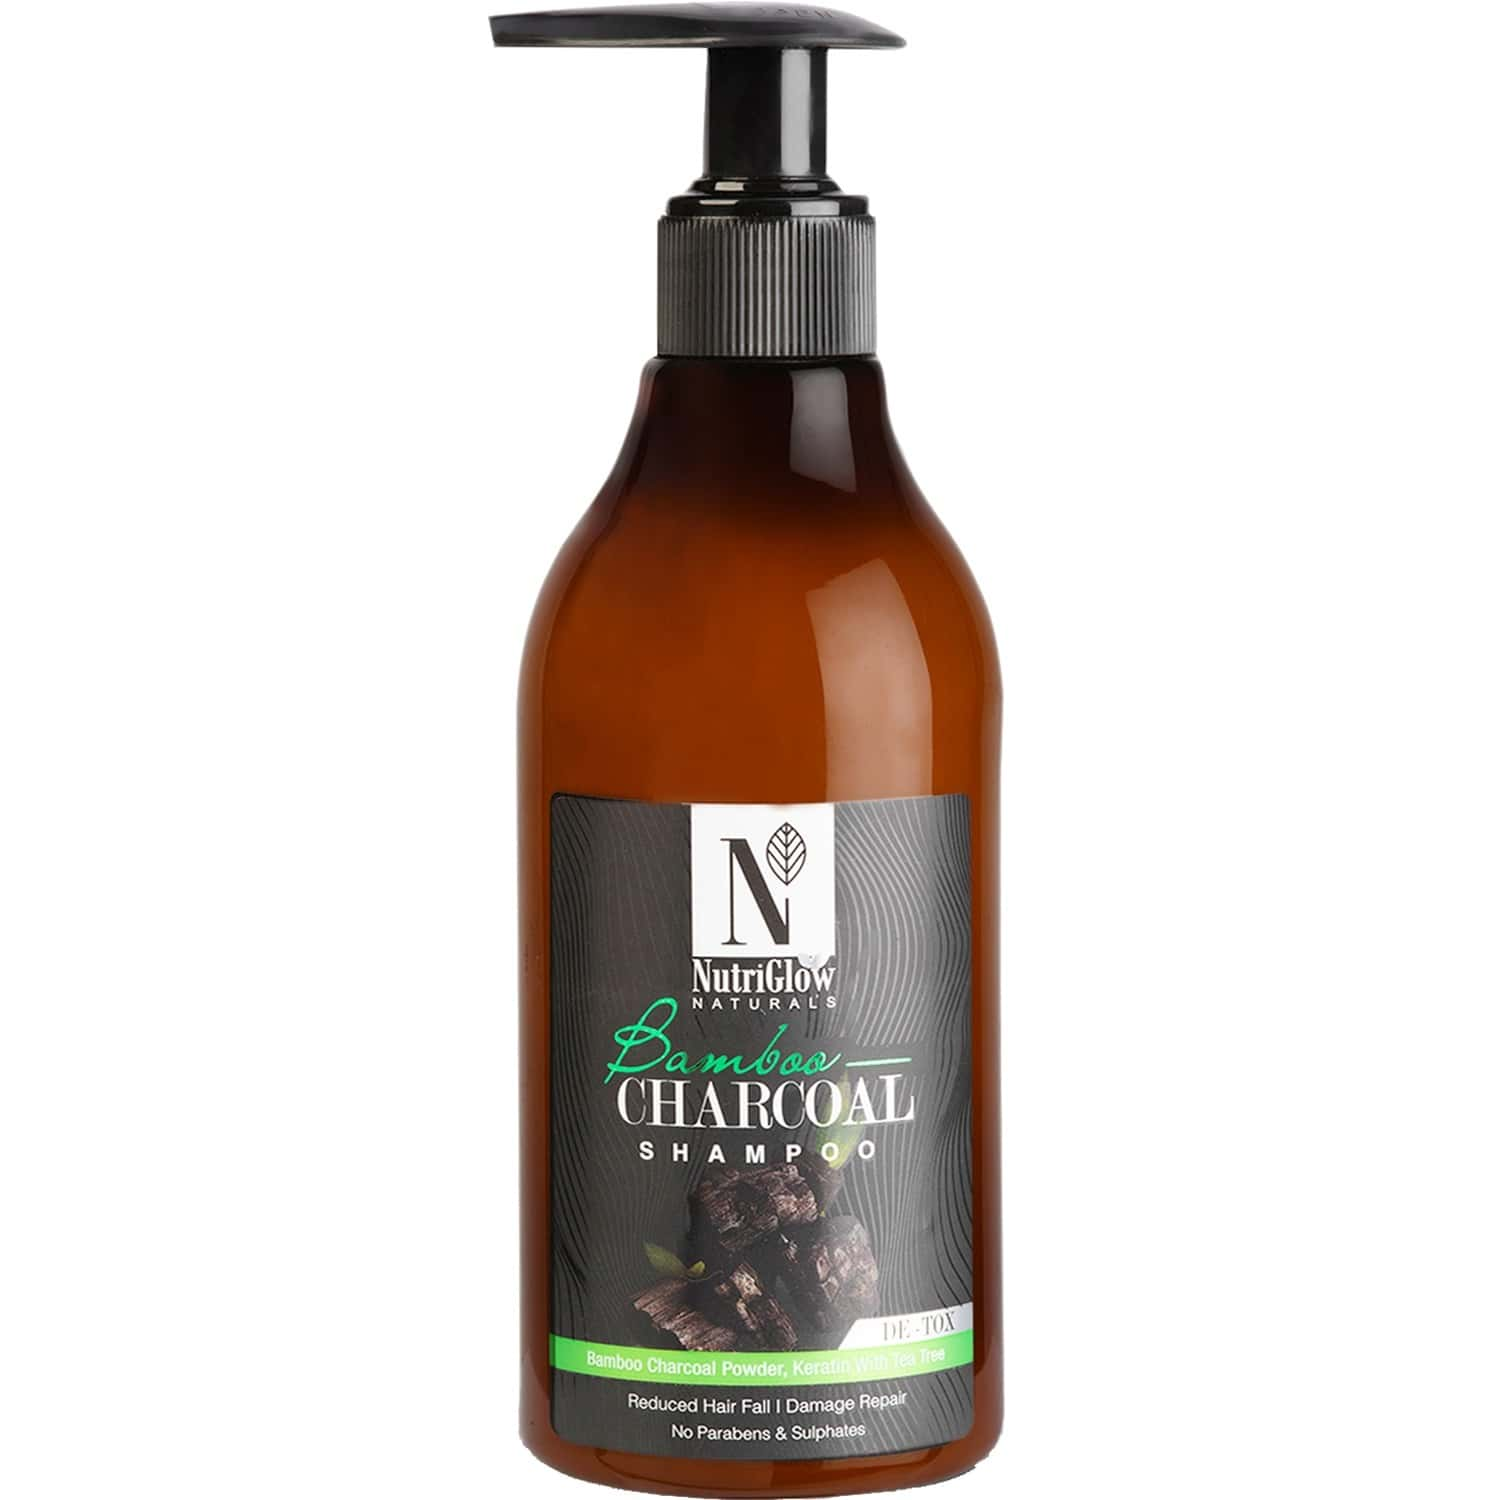 Nutriglow Natural's Bamboo Charcoal Shampoo /with Natural Source Ingredients/for Damaged Hair 300ml